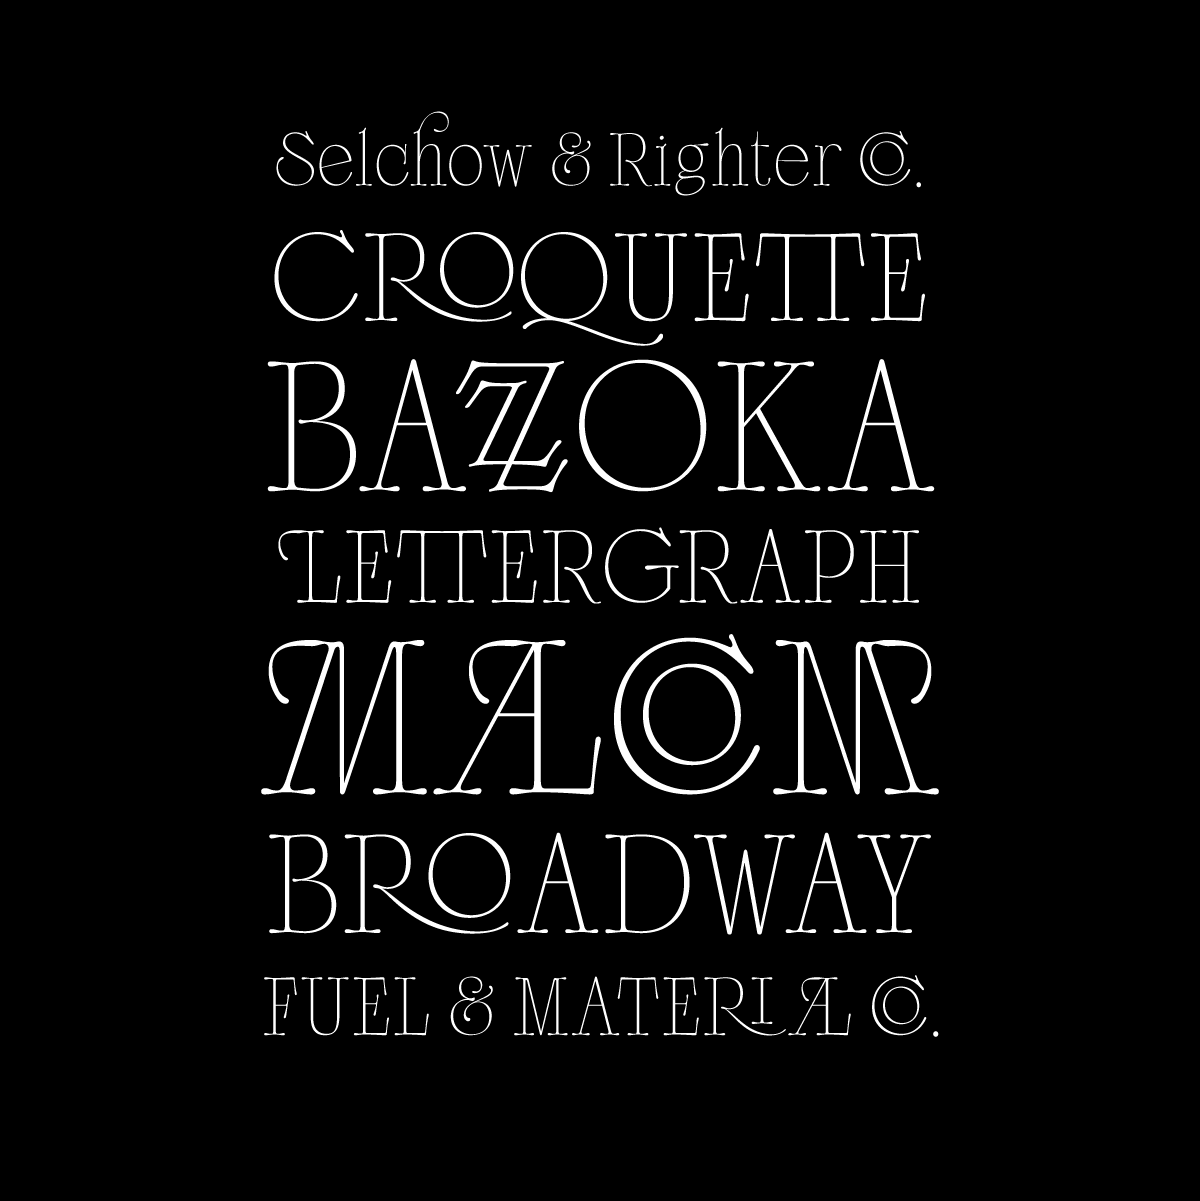 Scottsdale, a new serif typeface designed by Adam Fathony for Typeverything.com